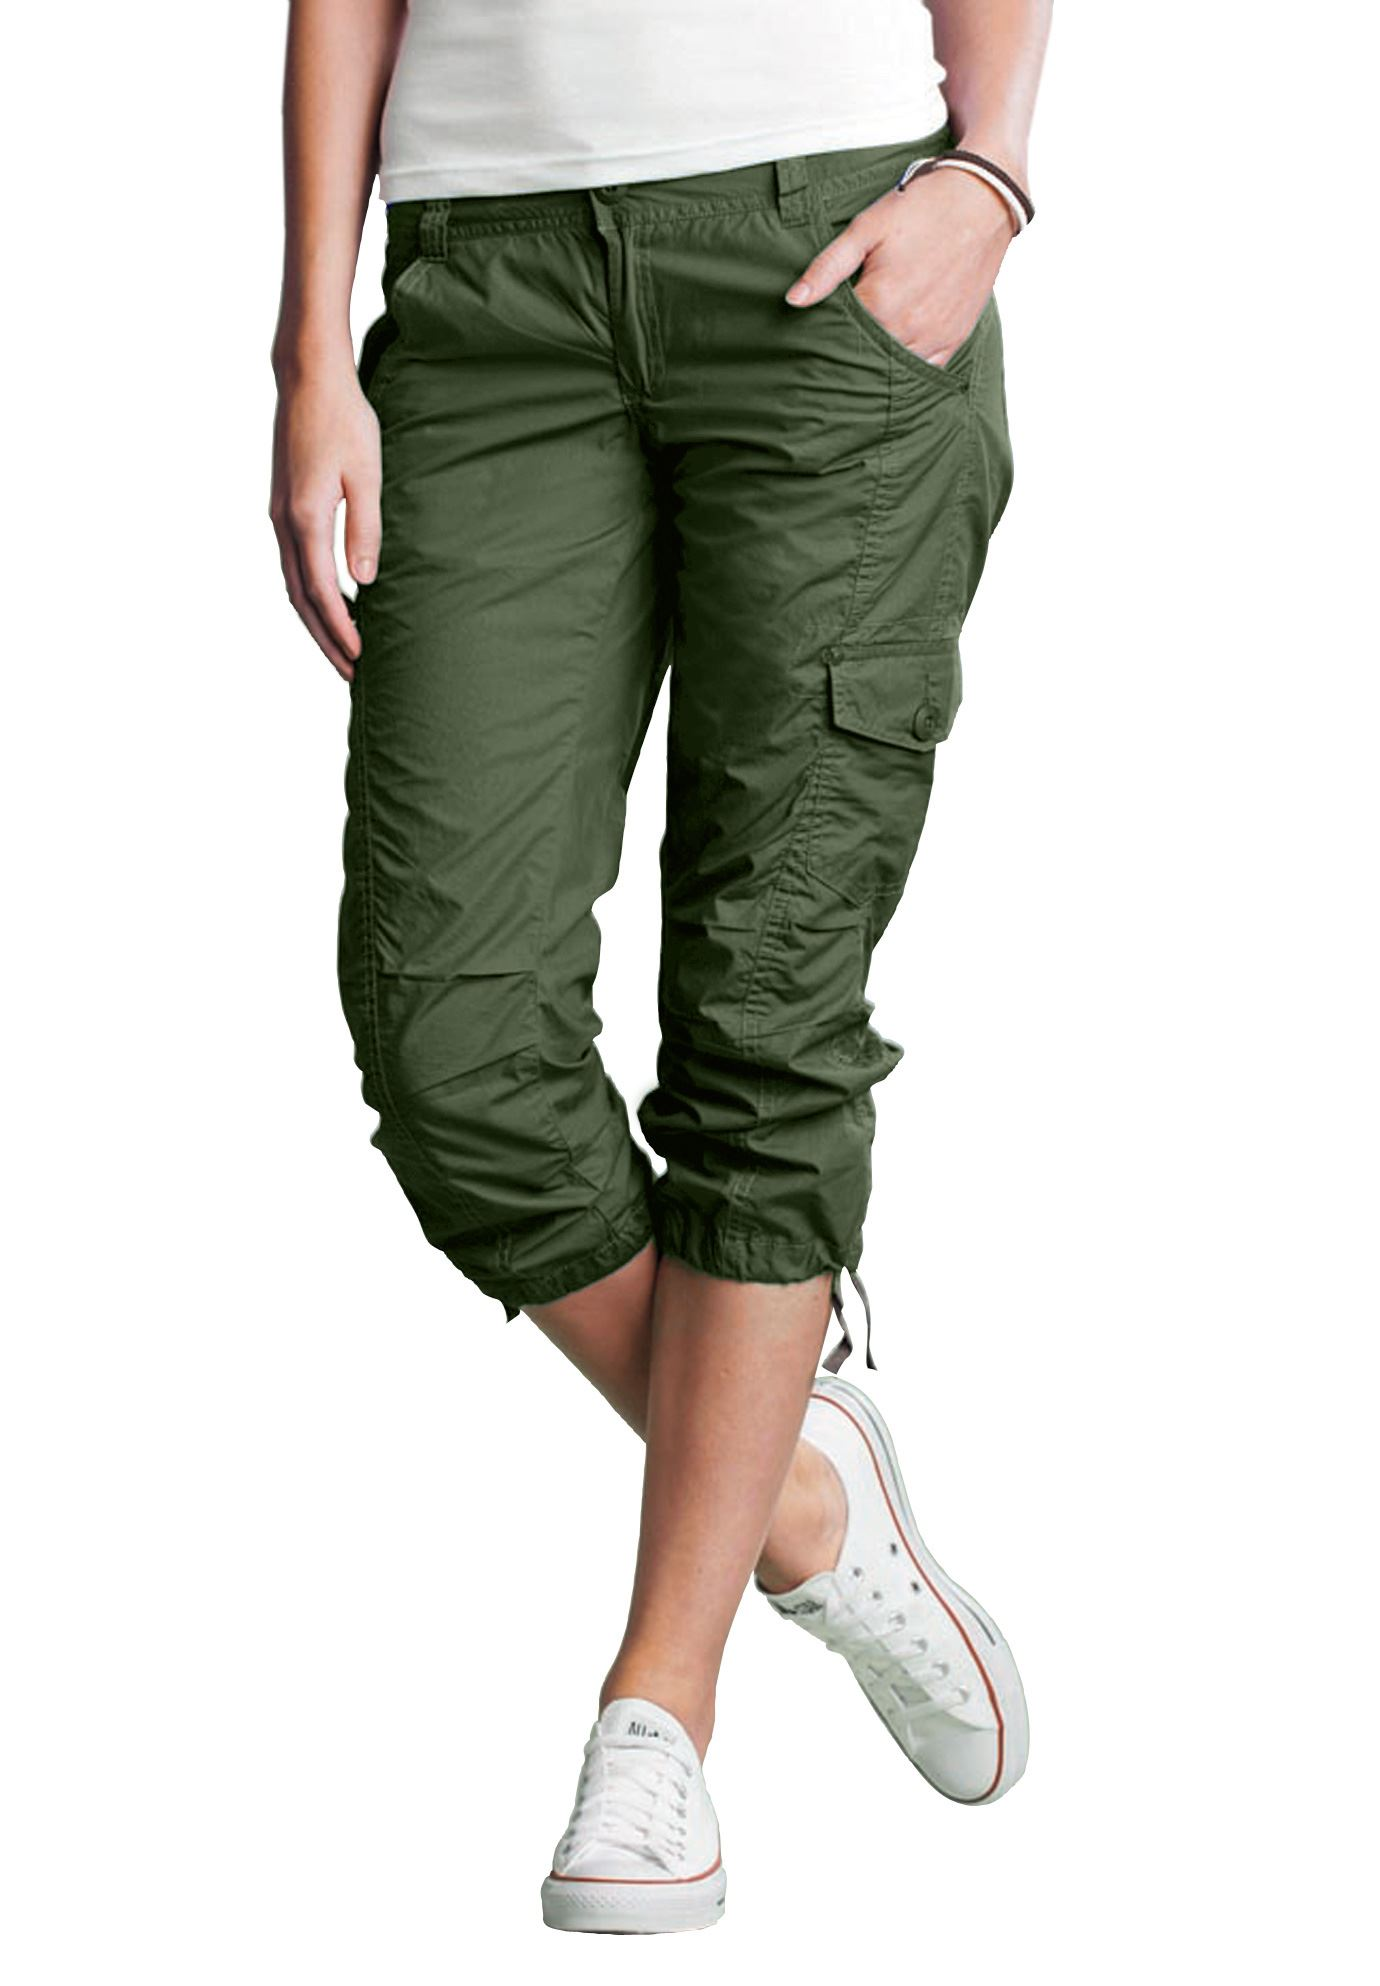 womens cargo capri pants photo - 2